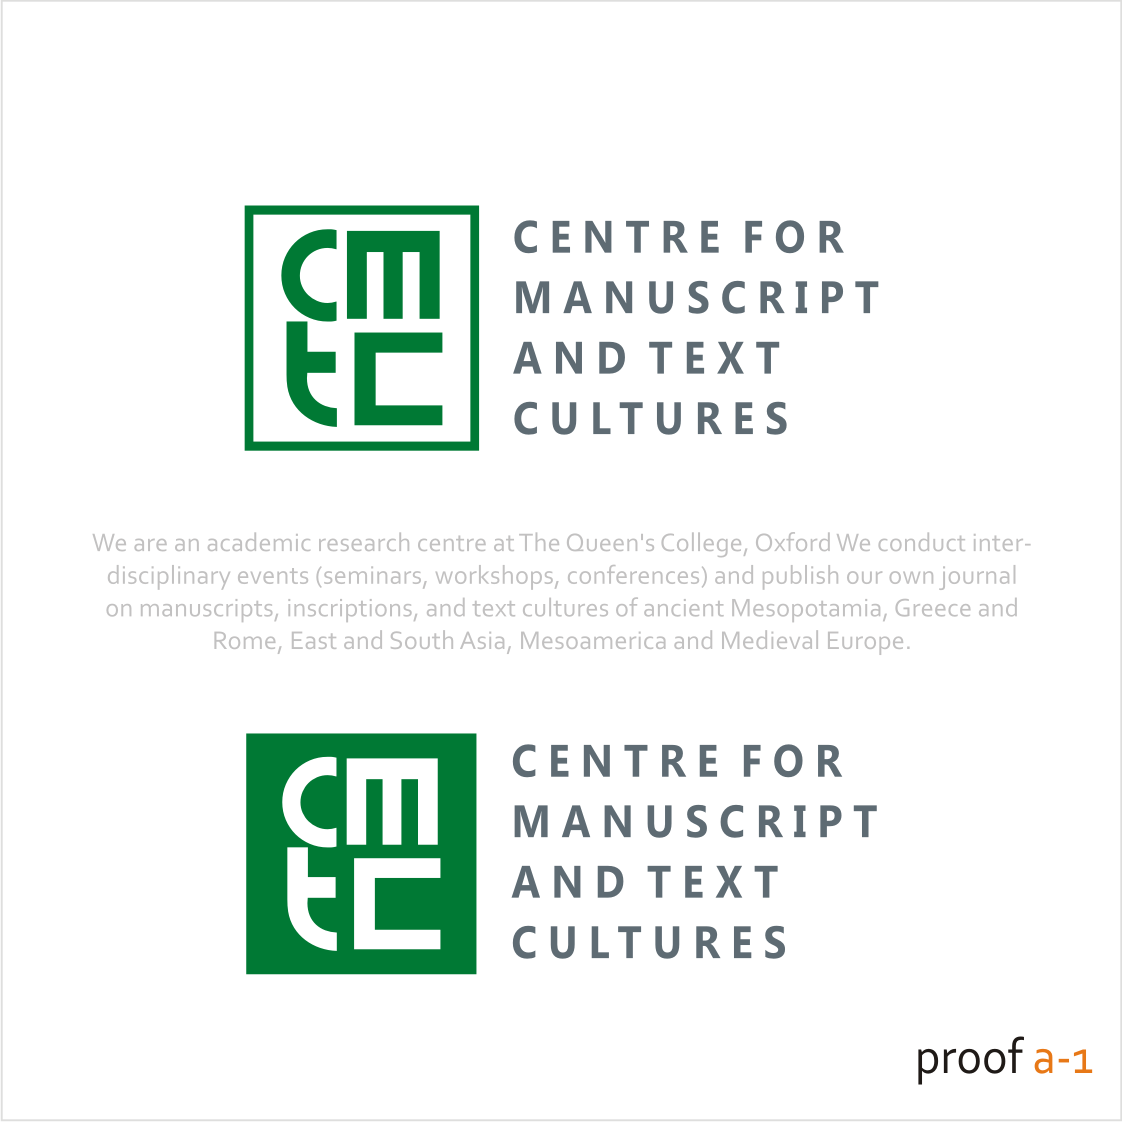 Create a logo for a new research centre in Oxford